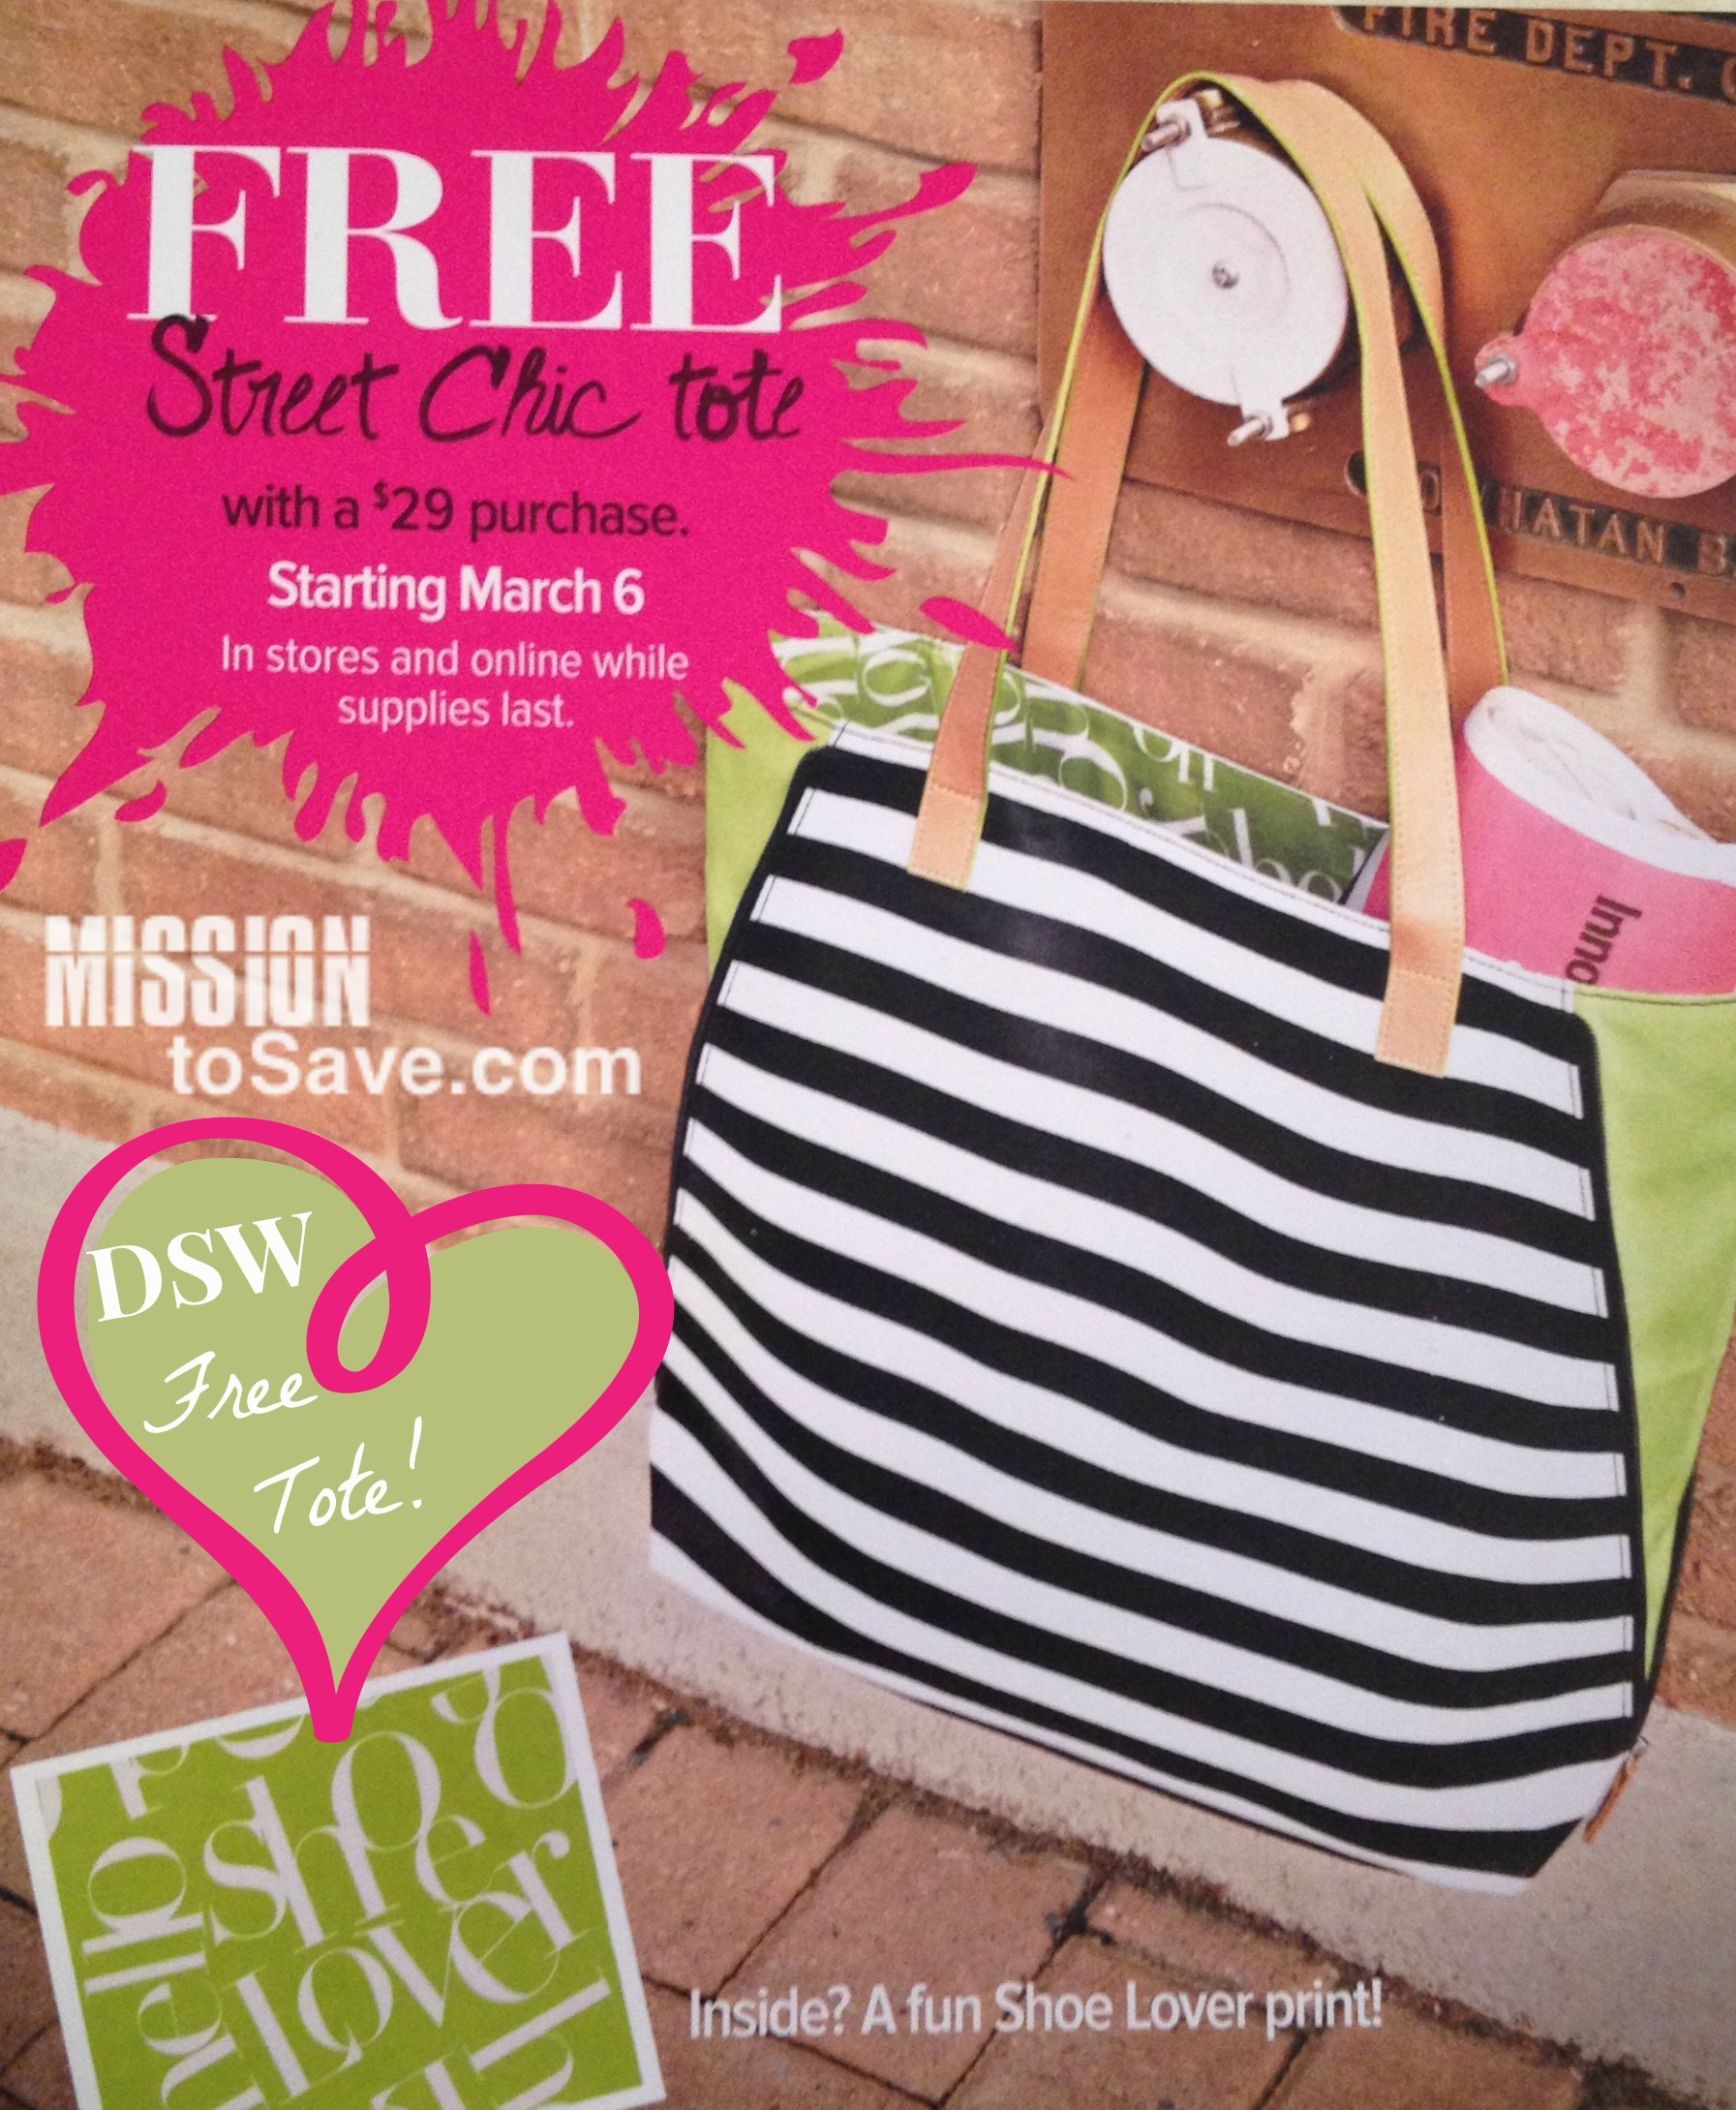 Dsw Free Tote With Purchase Chic Deal Starts March 6th